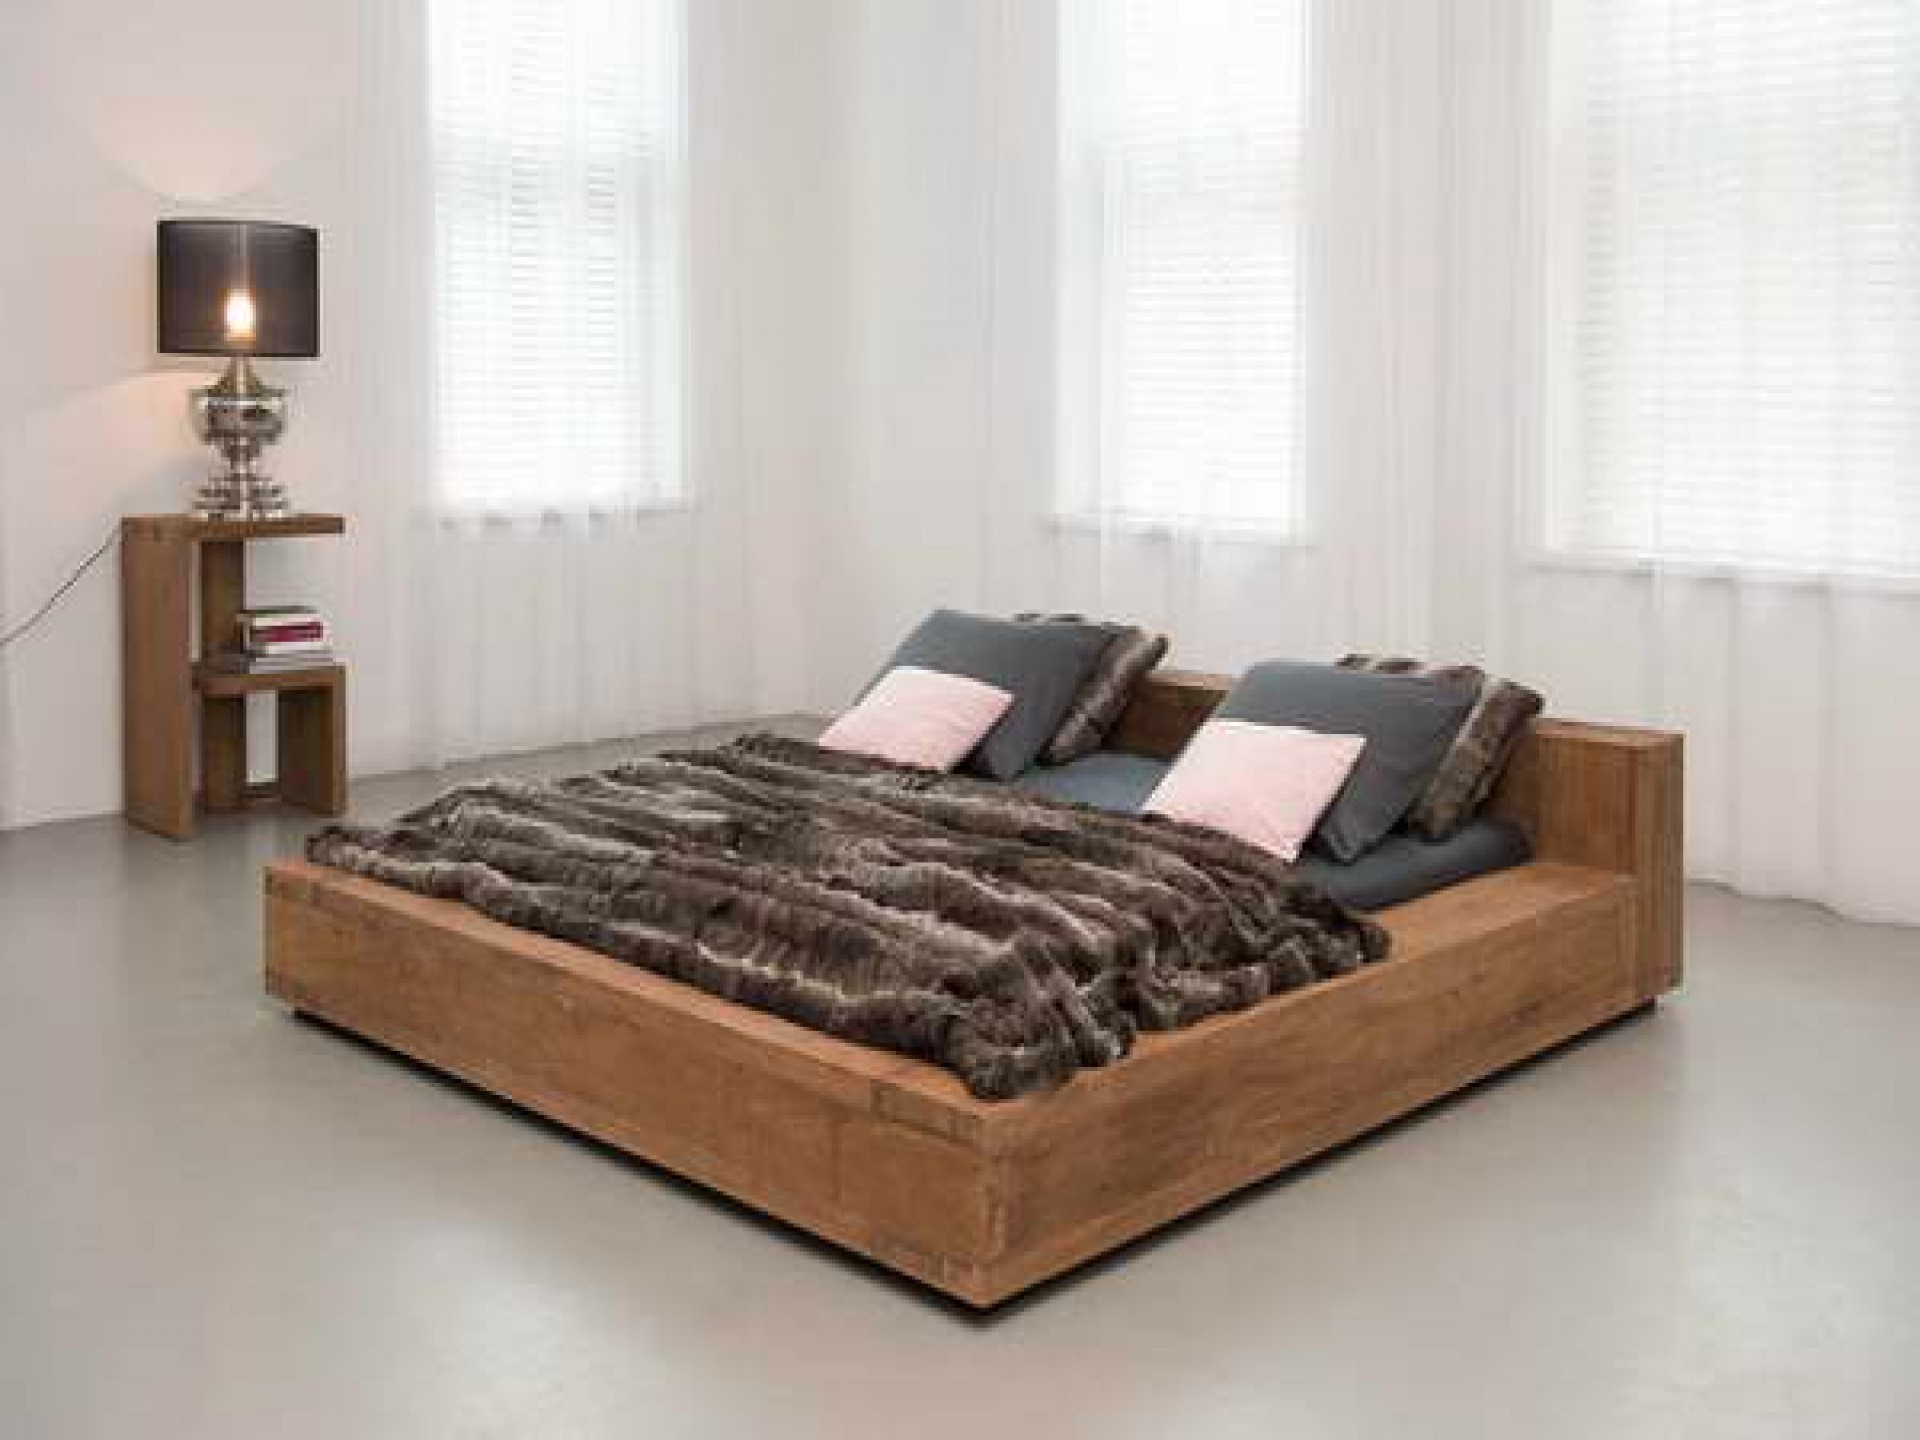 bedroom low profile wood fur blanket bed frame candle light shader curtain - Low Queen Bed Frame